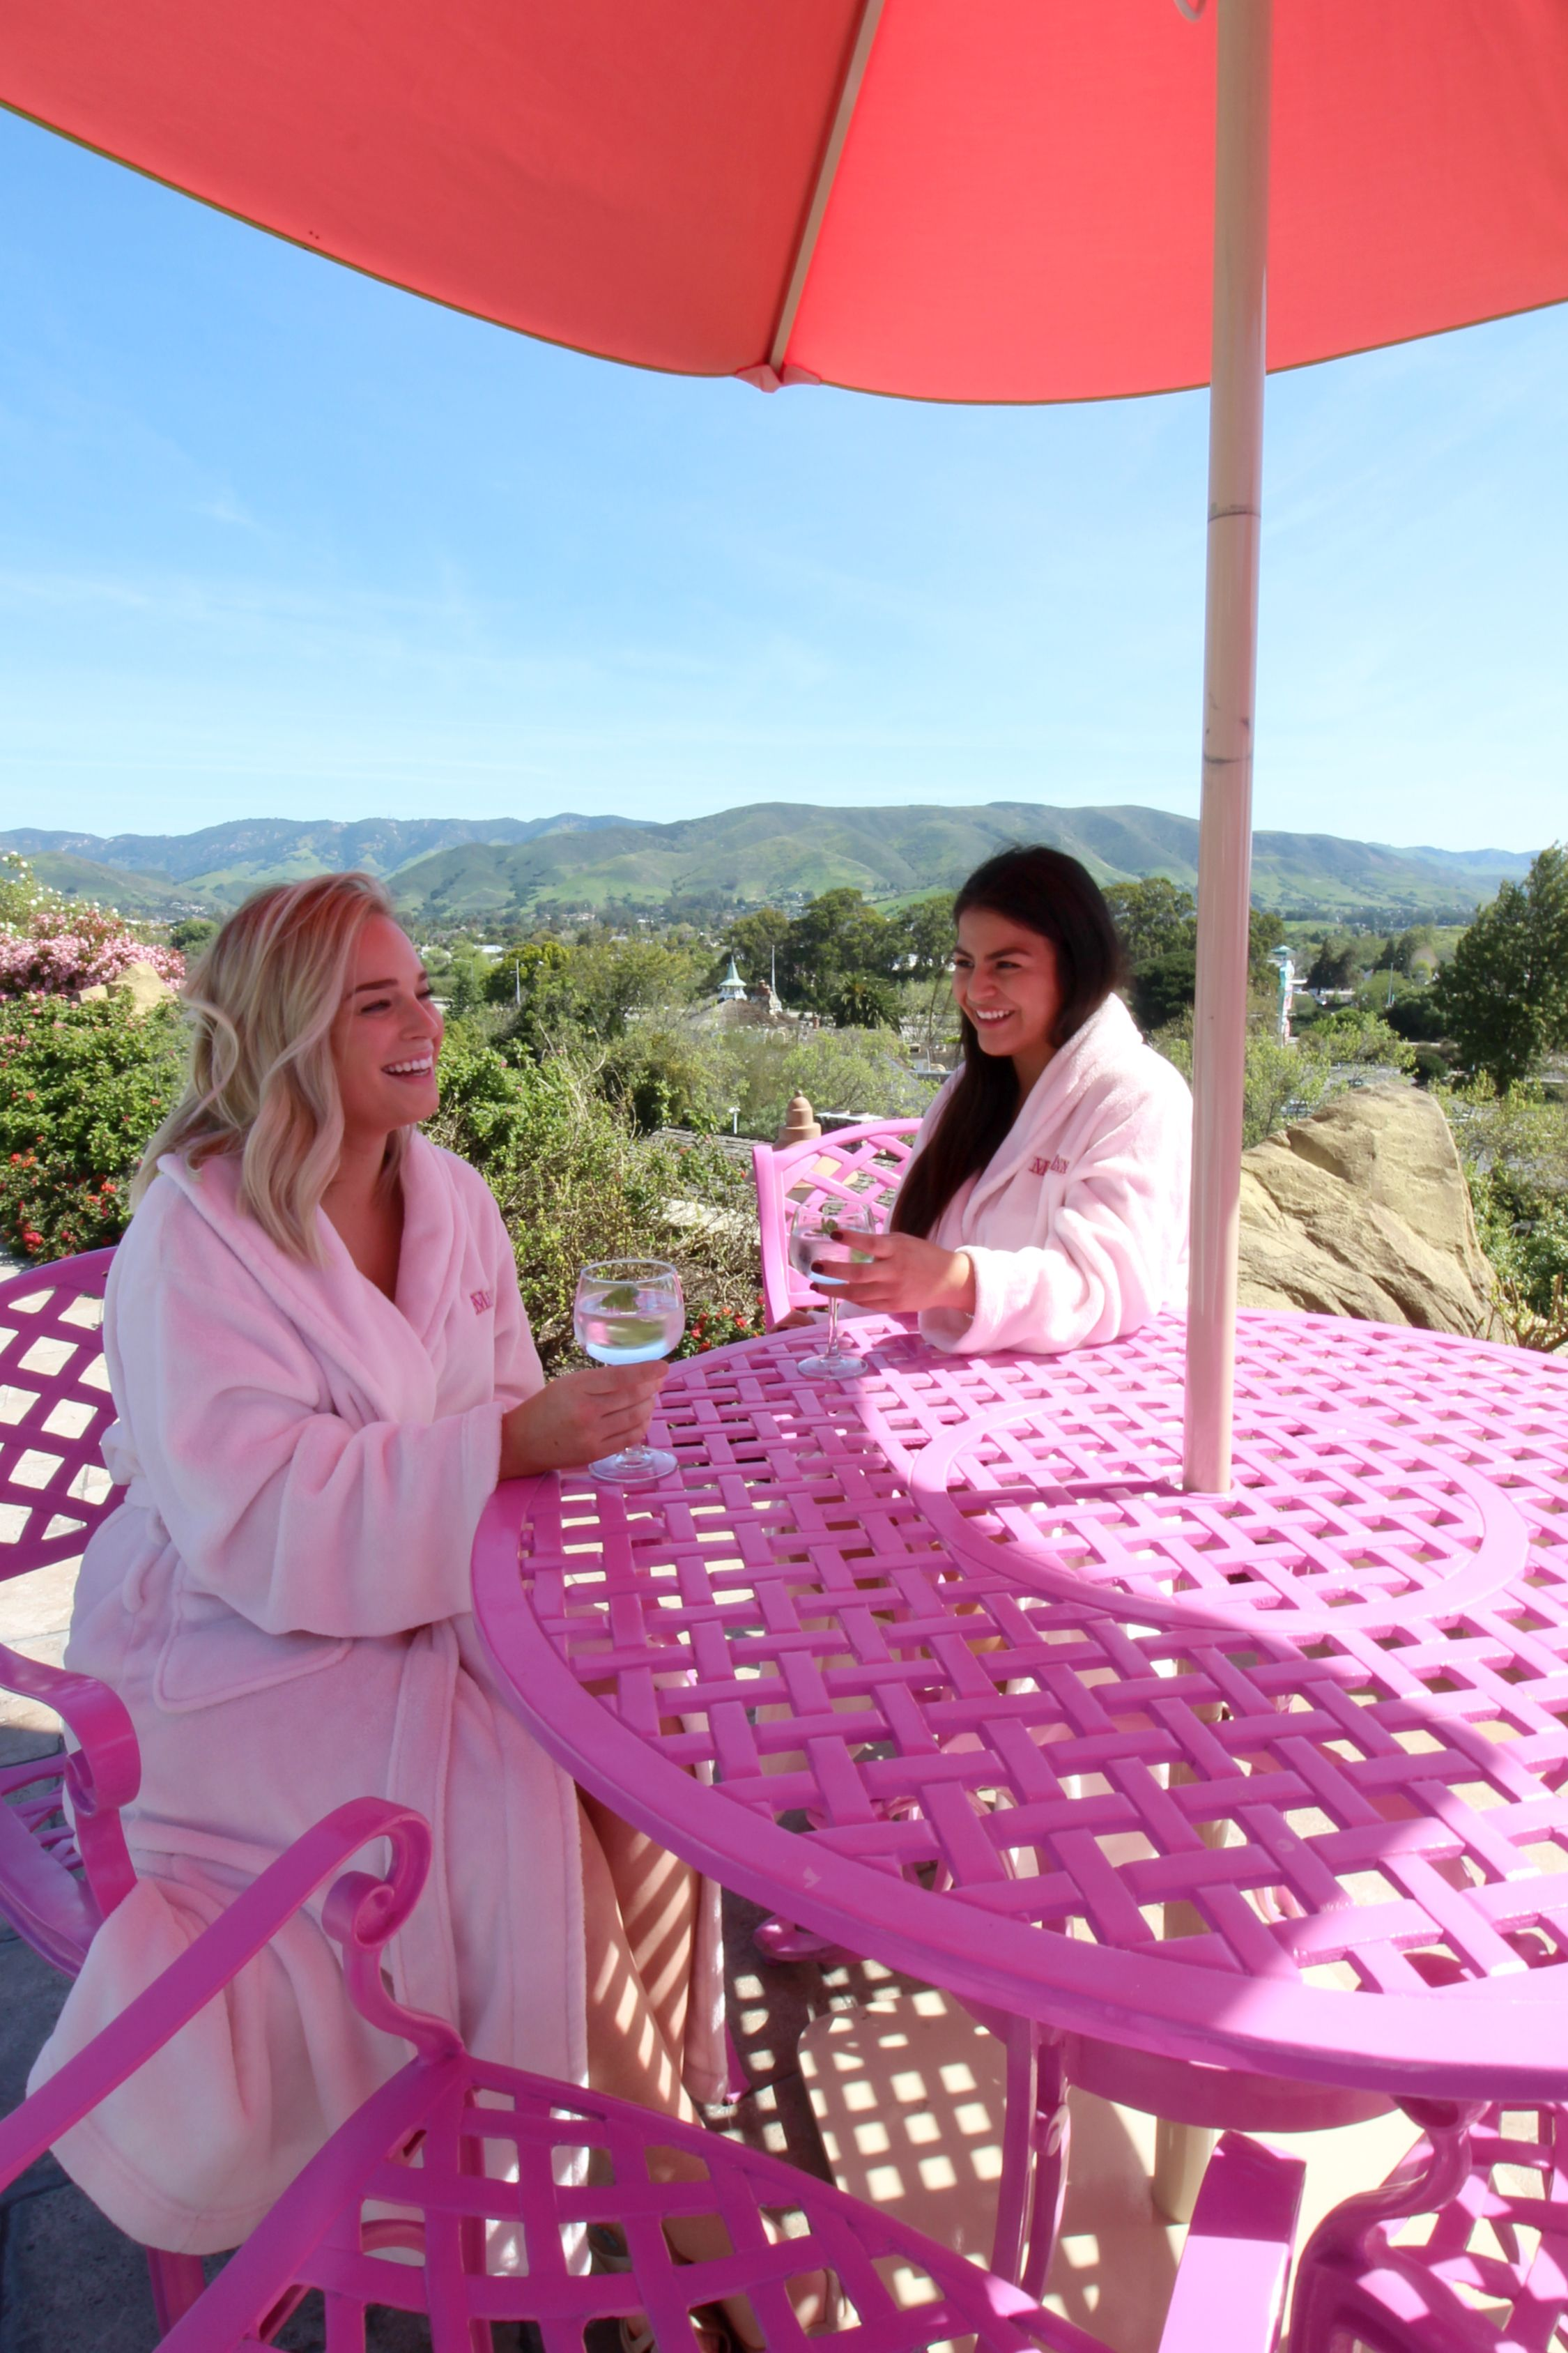 Awesome Cheers To Pink Robes, Pink Umbrellas, And Pink Patio Furniture!